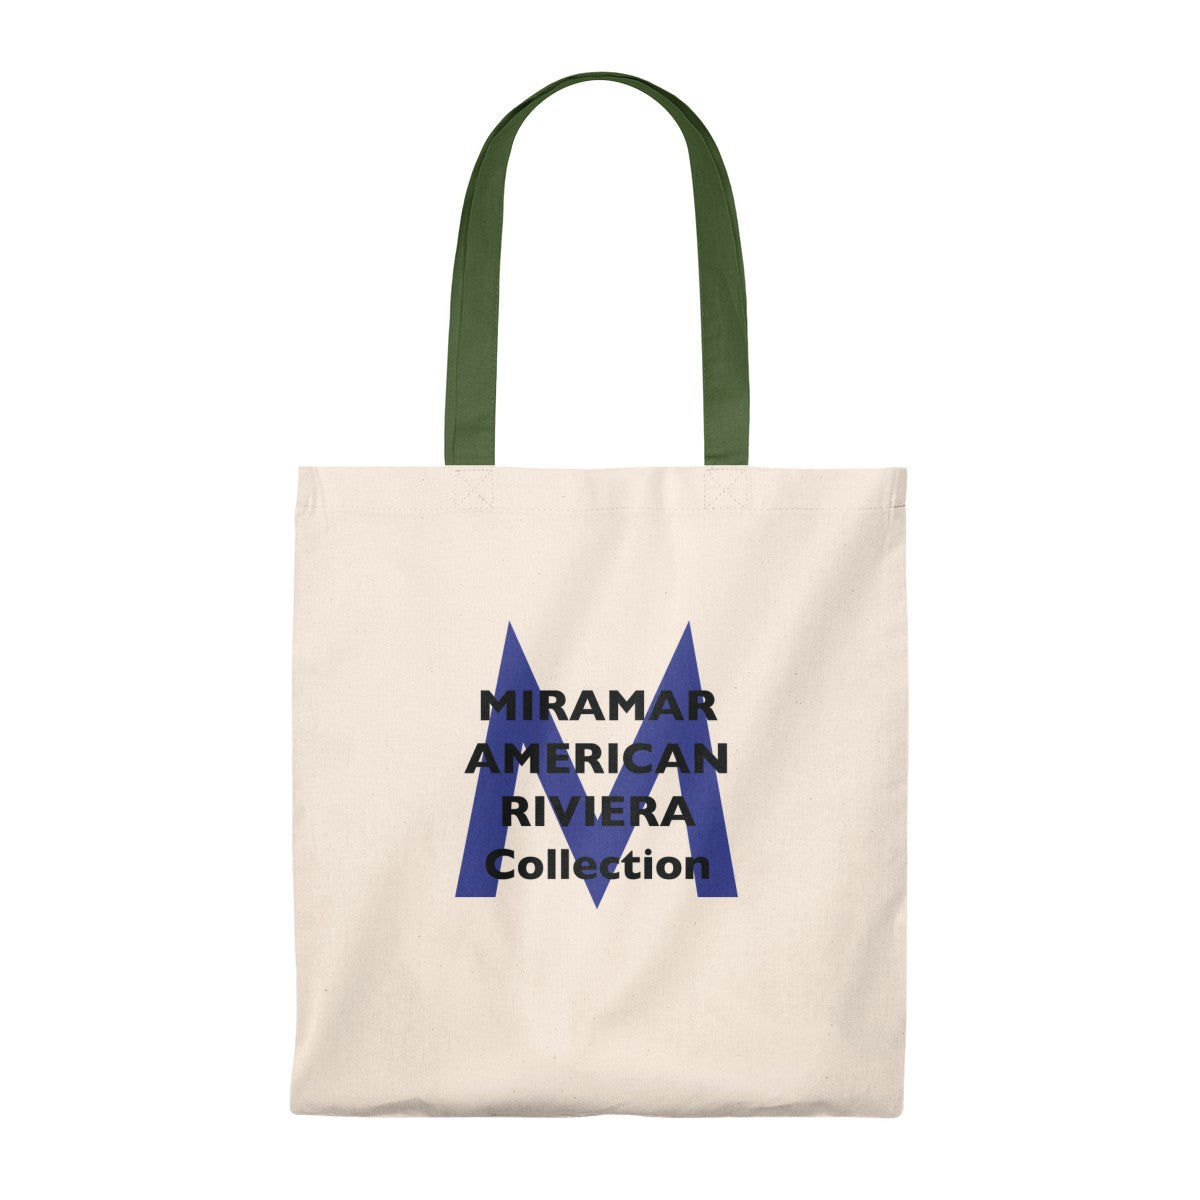 Miramar® American Riviera Collection  Tote Bag - Vintage